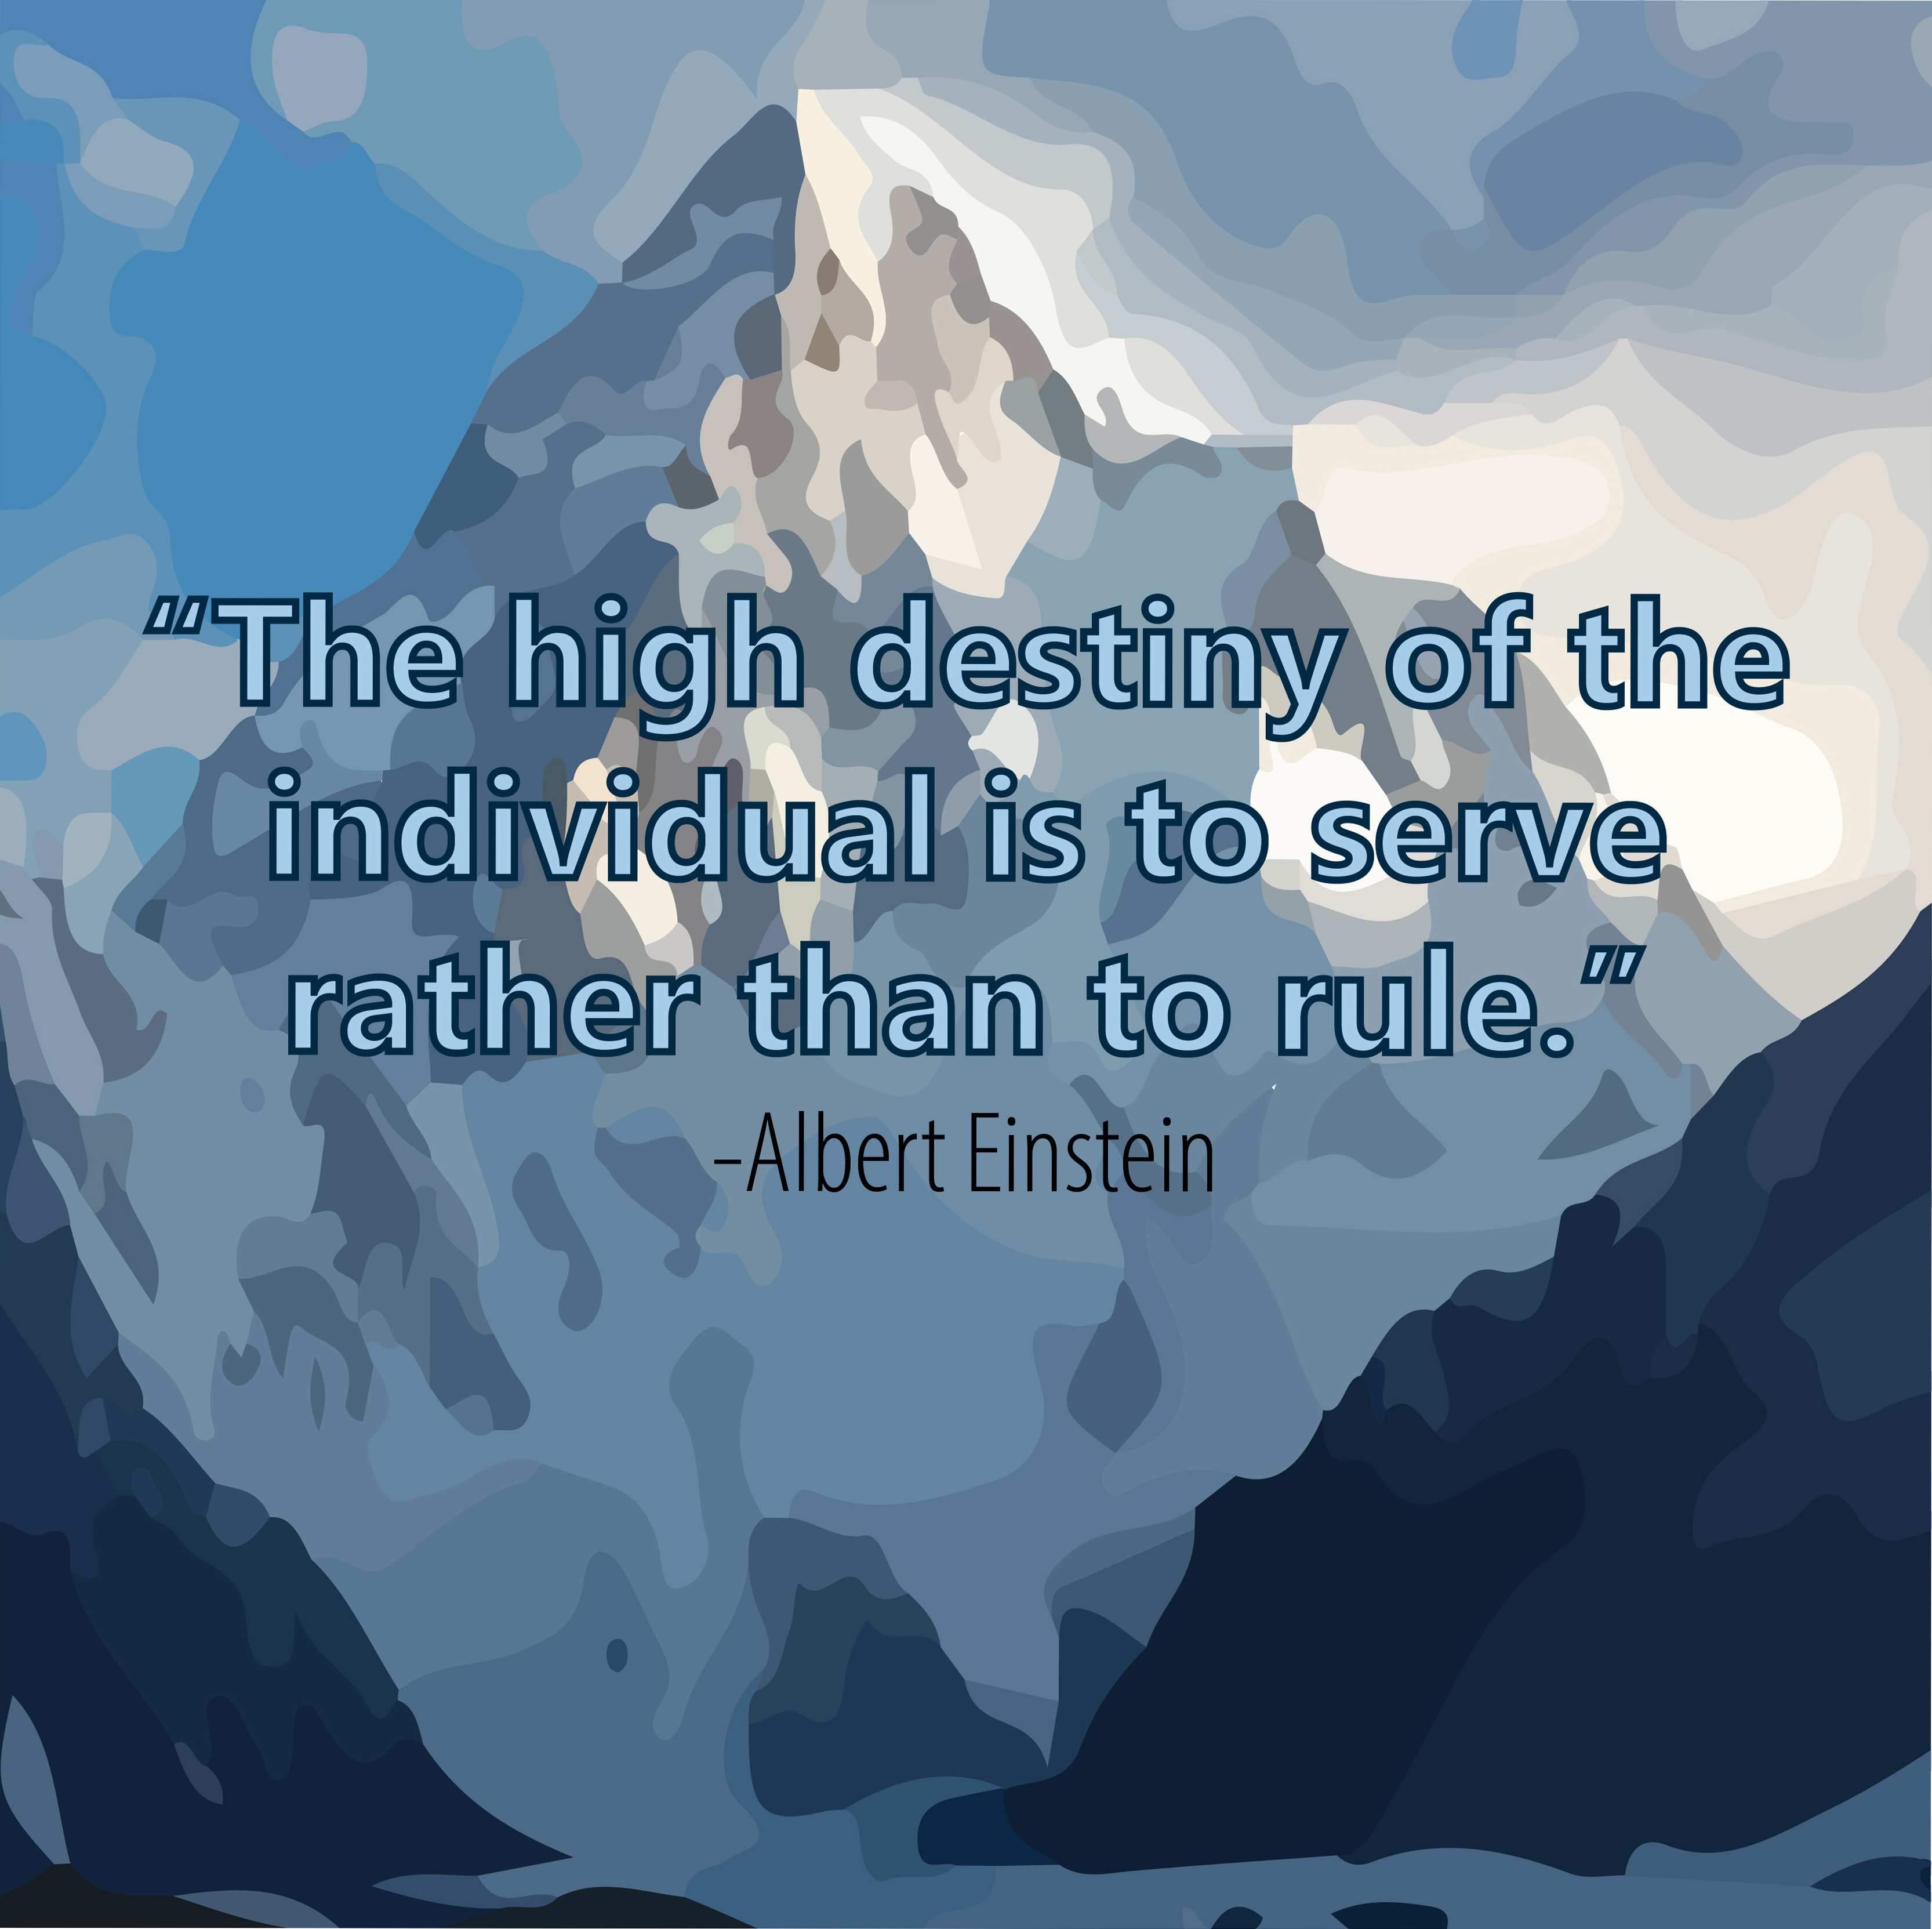 The high destiny of the individual is to serve rather than to rule - Albert Einstein